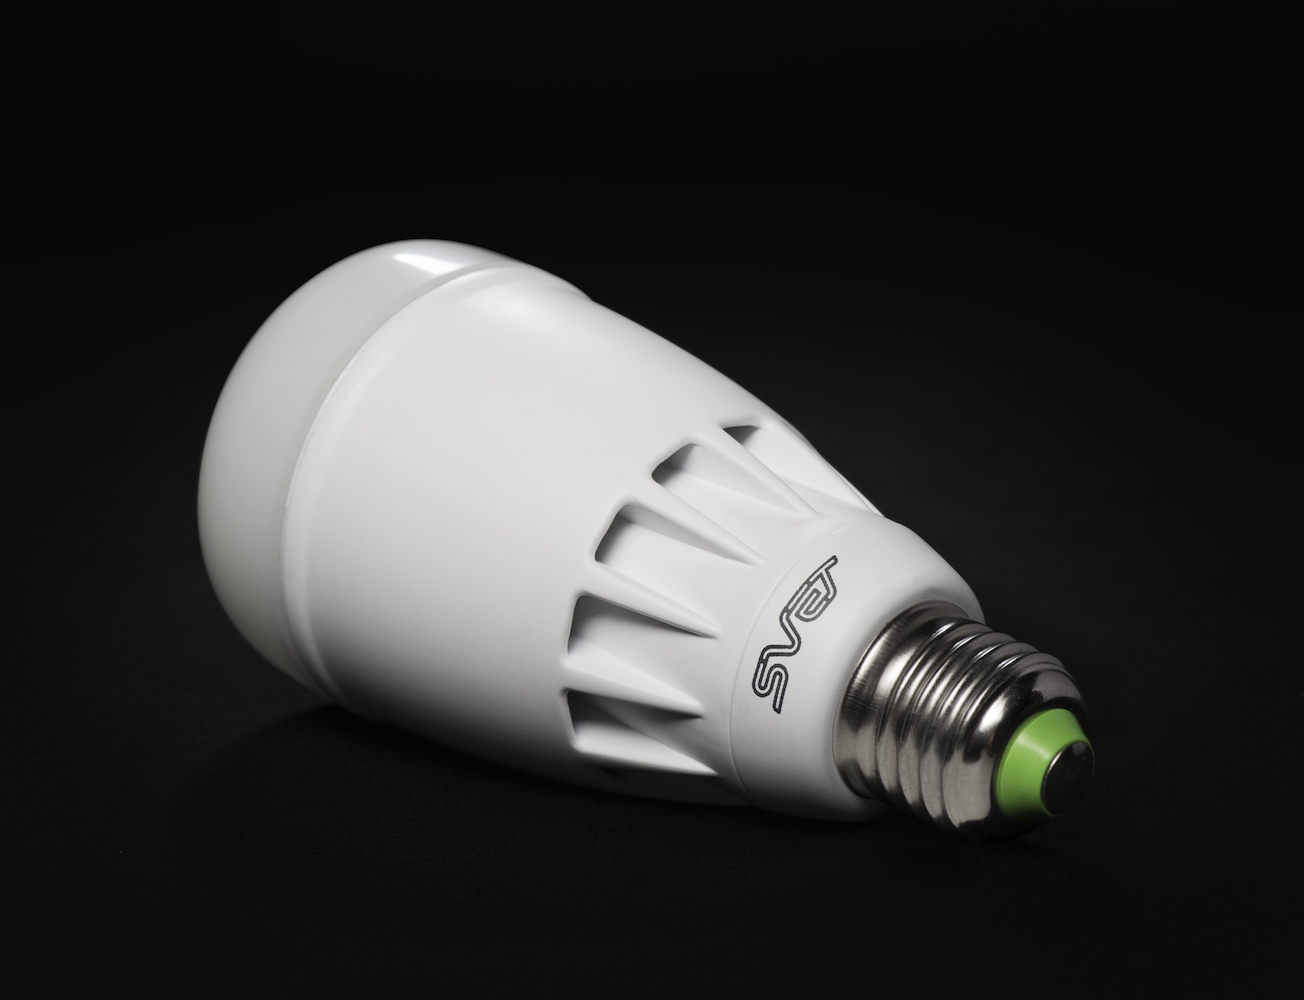 svet-the-health-friendly-light-bulb-02